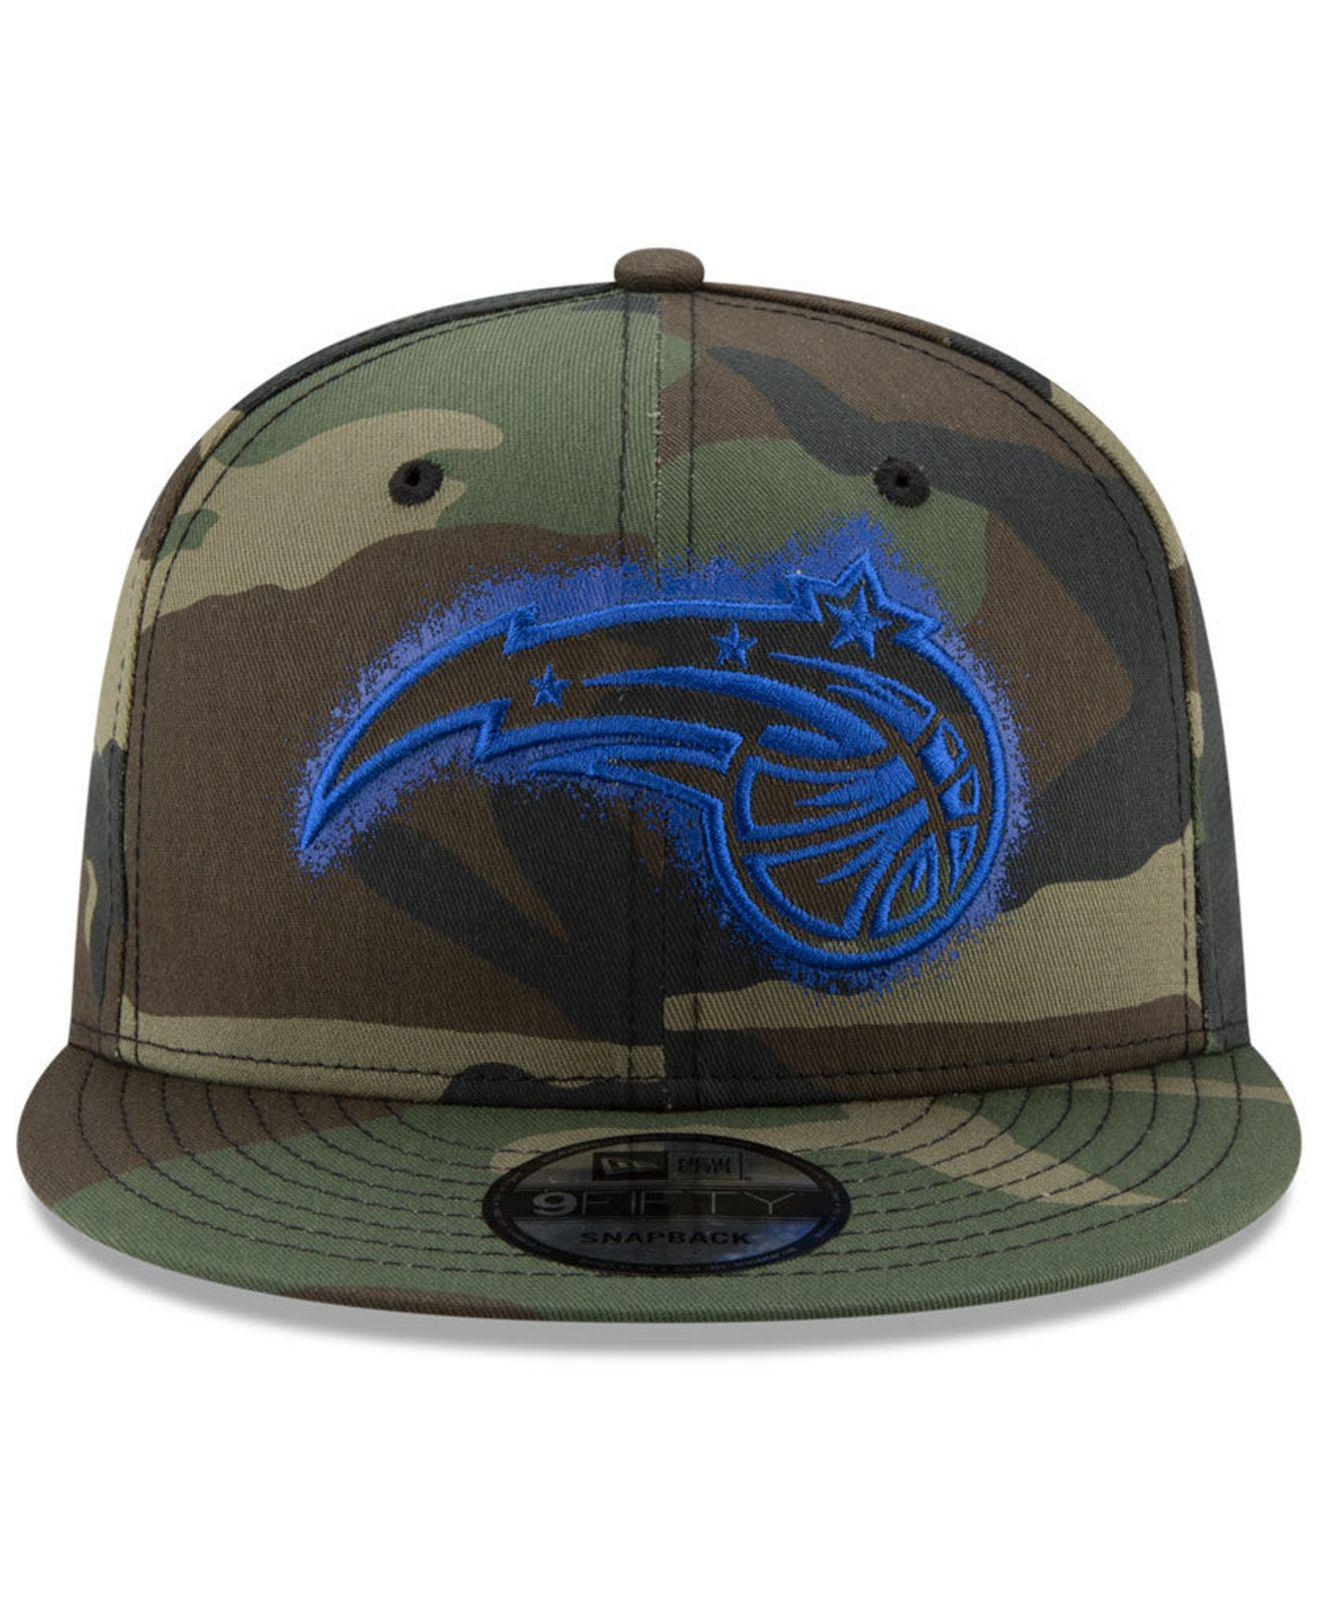 ea7131557d1 Lyst - Ktz Orlando Magic Overspray 9fifty Snapback Cap in Green for Men